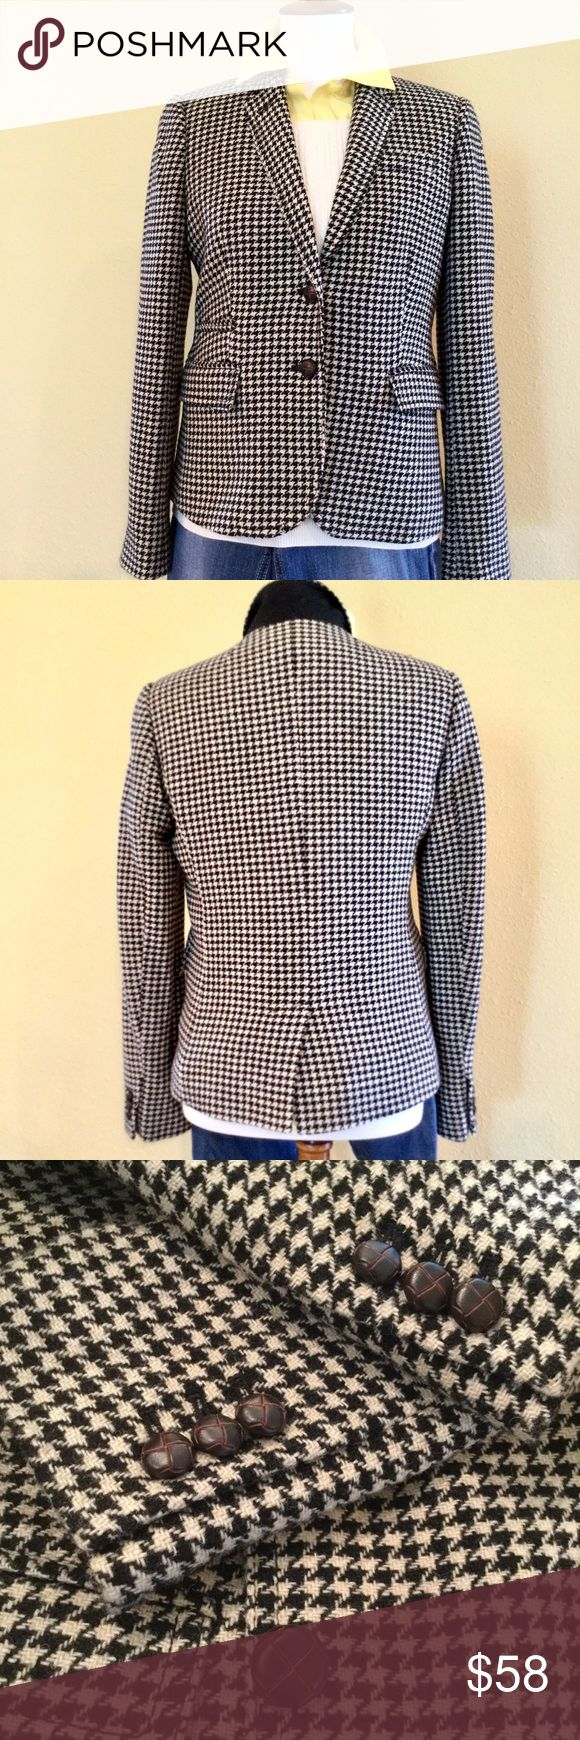 ⭐️HOST PICK⭐️ J. Crew Schoolboy Blazer Classic blazer with all the great details:  chestnut buttons, inside pocket, back vent.  Like new condition.  Since this is a preowned garment dry cleaning is always recommended before wearing. J. Crew Jackets & Coats Blazers